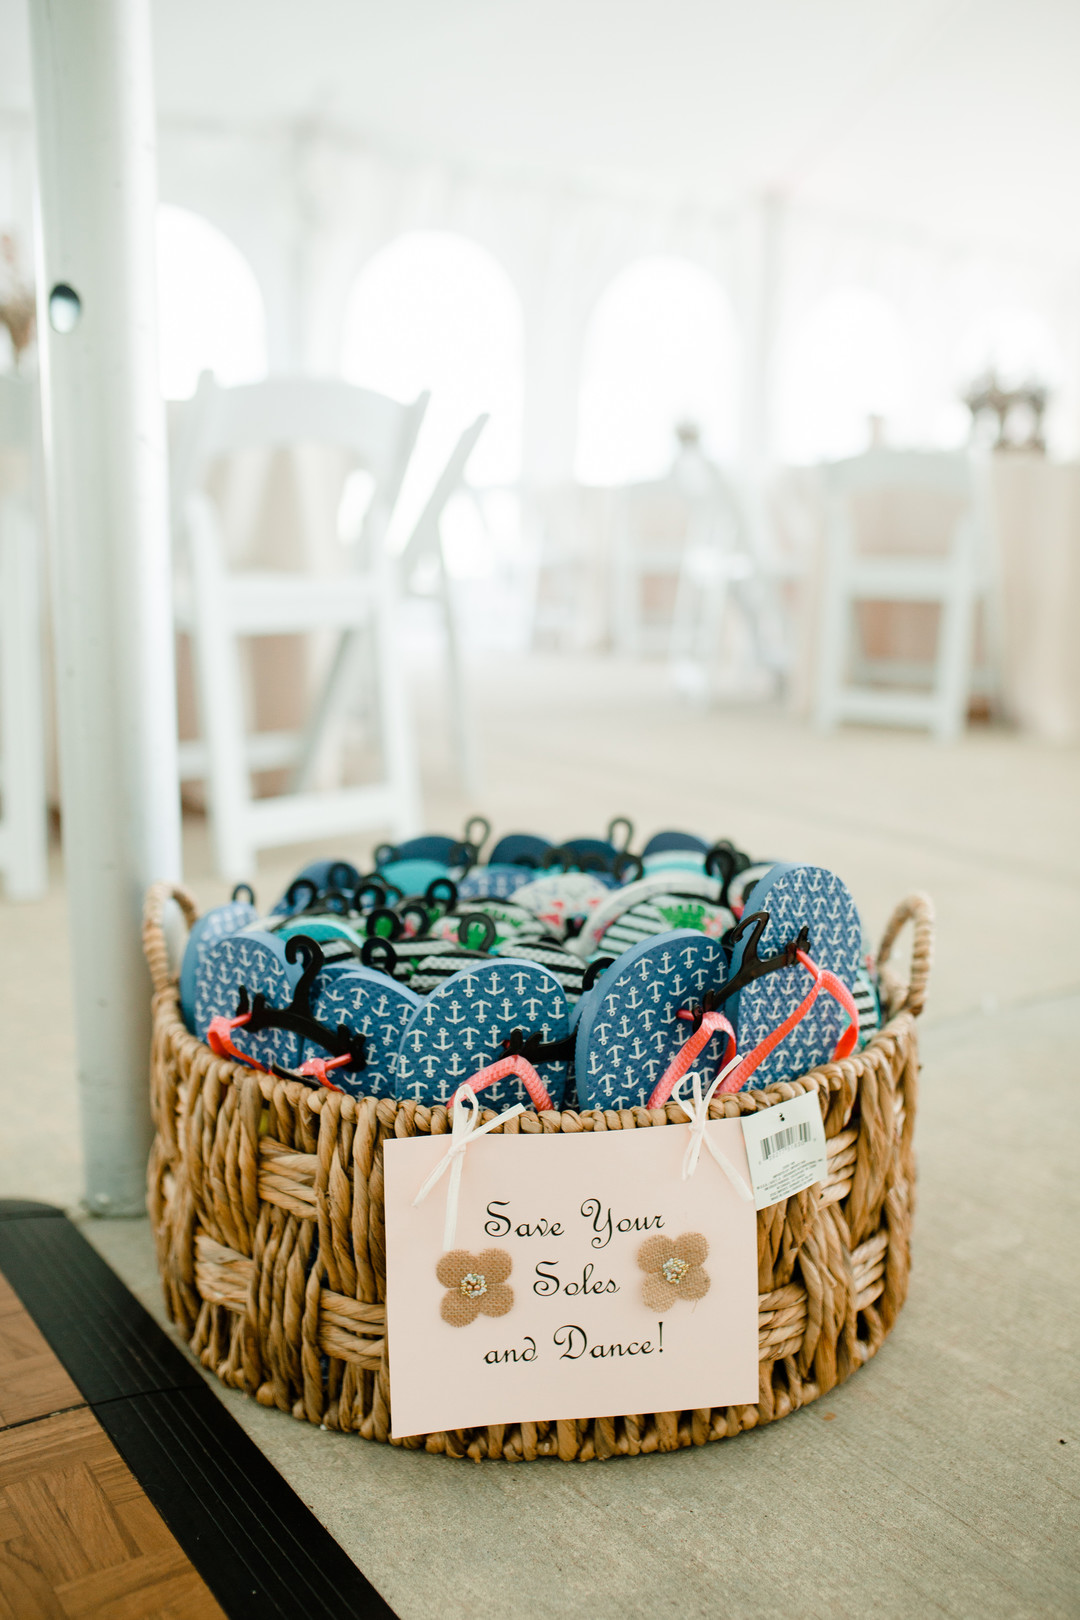 Wedding reception ideas: Rustic country wedding in Minooka, IL captured by Katie Brsan Photography. Visit CHItheeWED.com for more wedding inspiration!